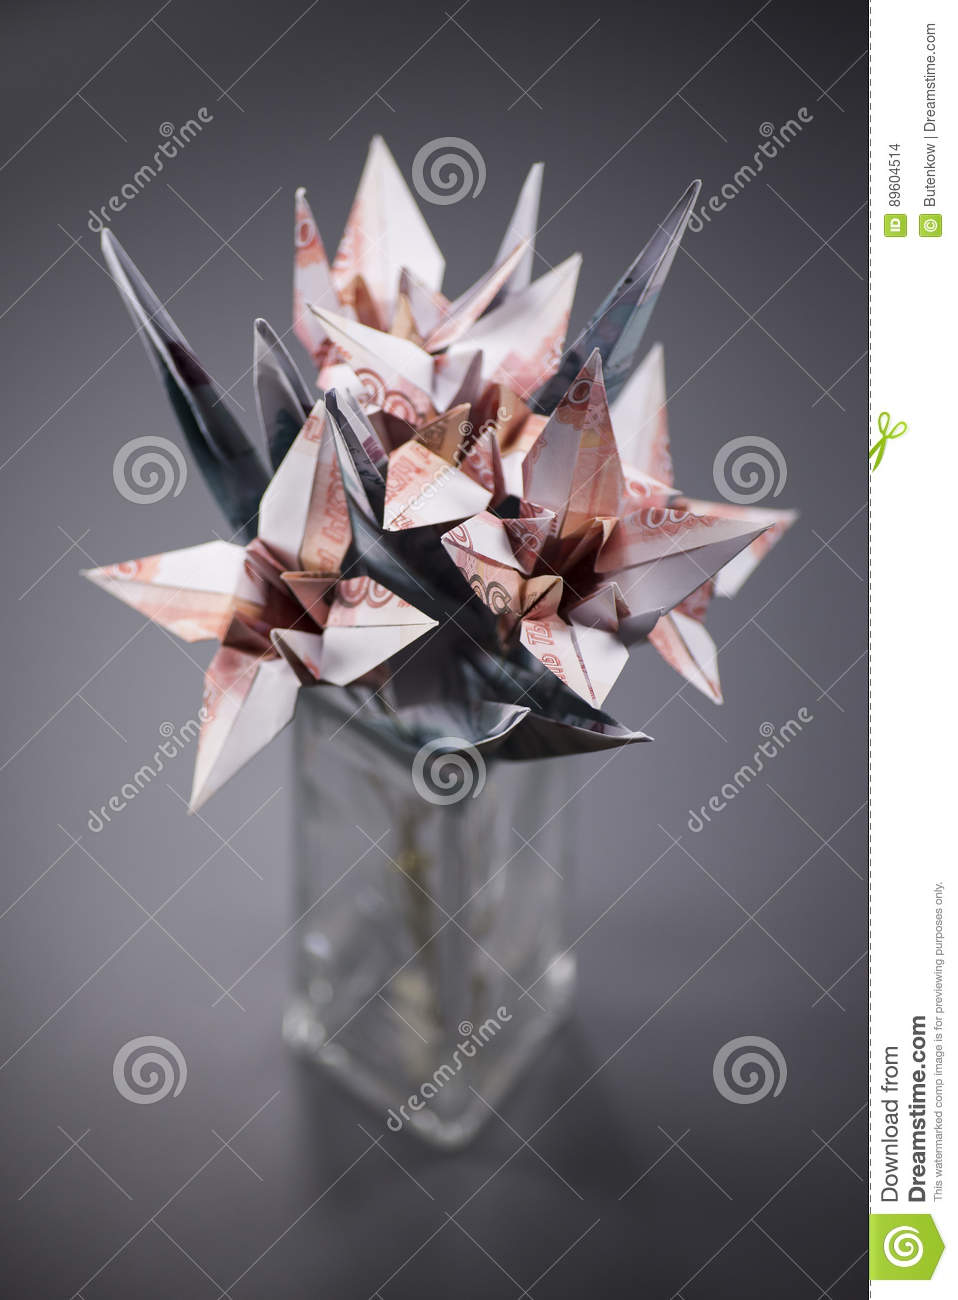 Flowers Origami Banknotes Stock Photo Image Of Floral 89604514